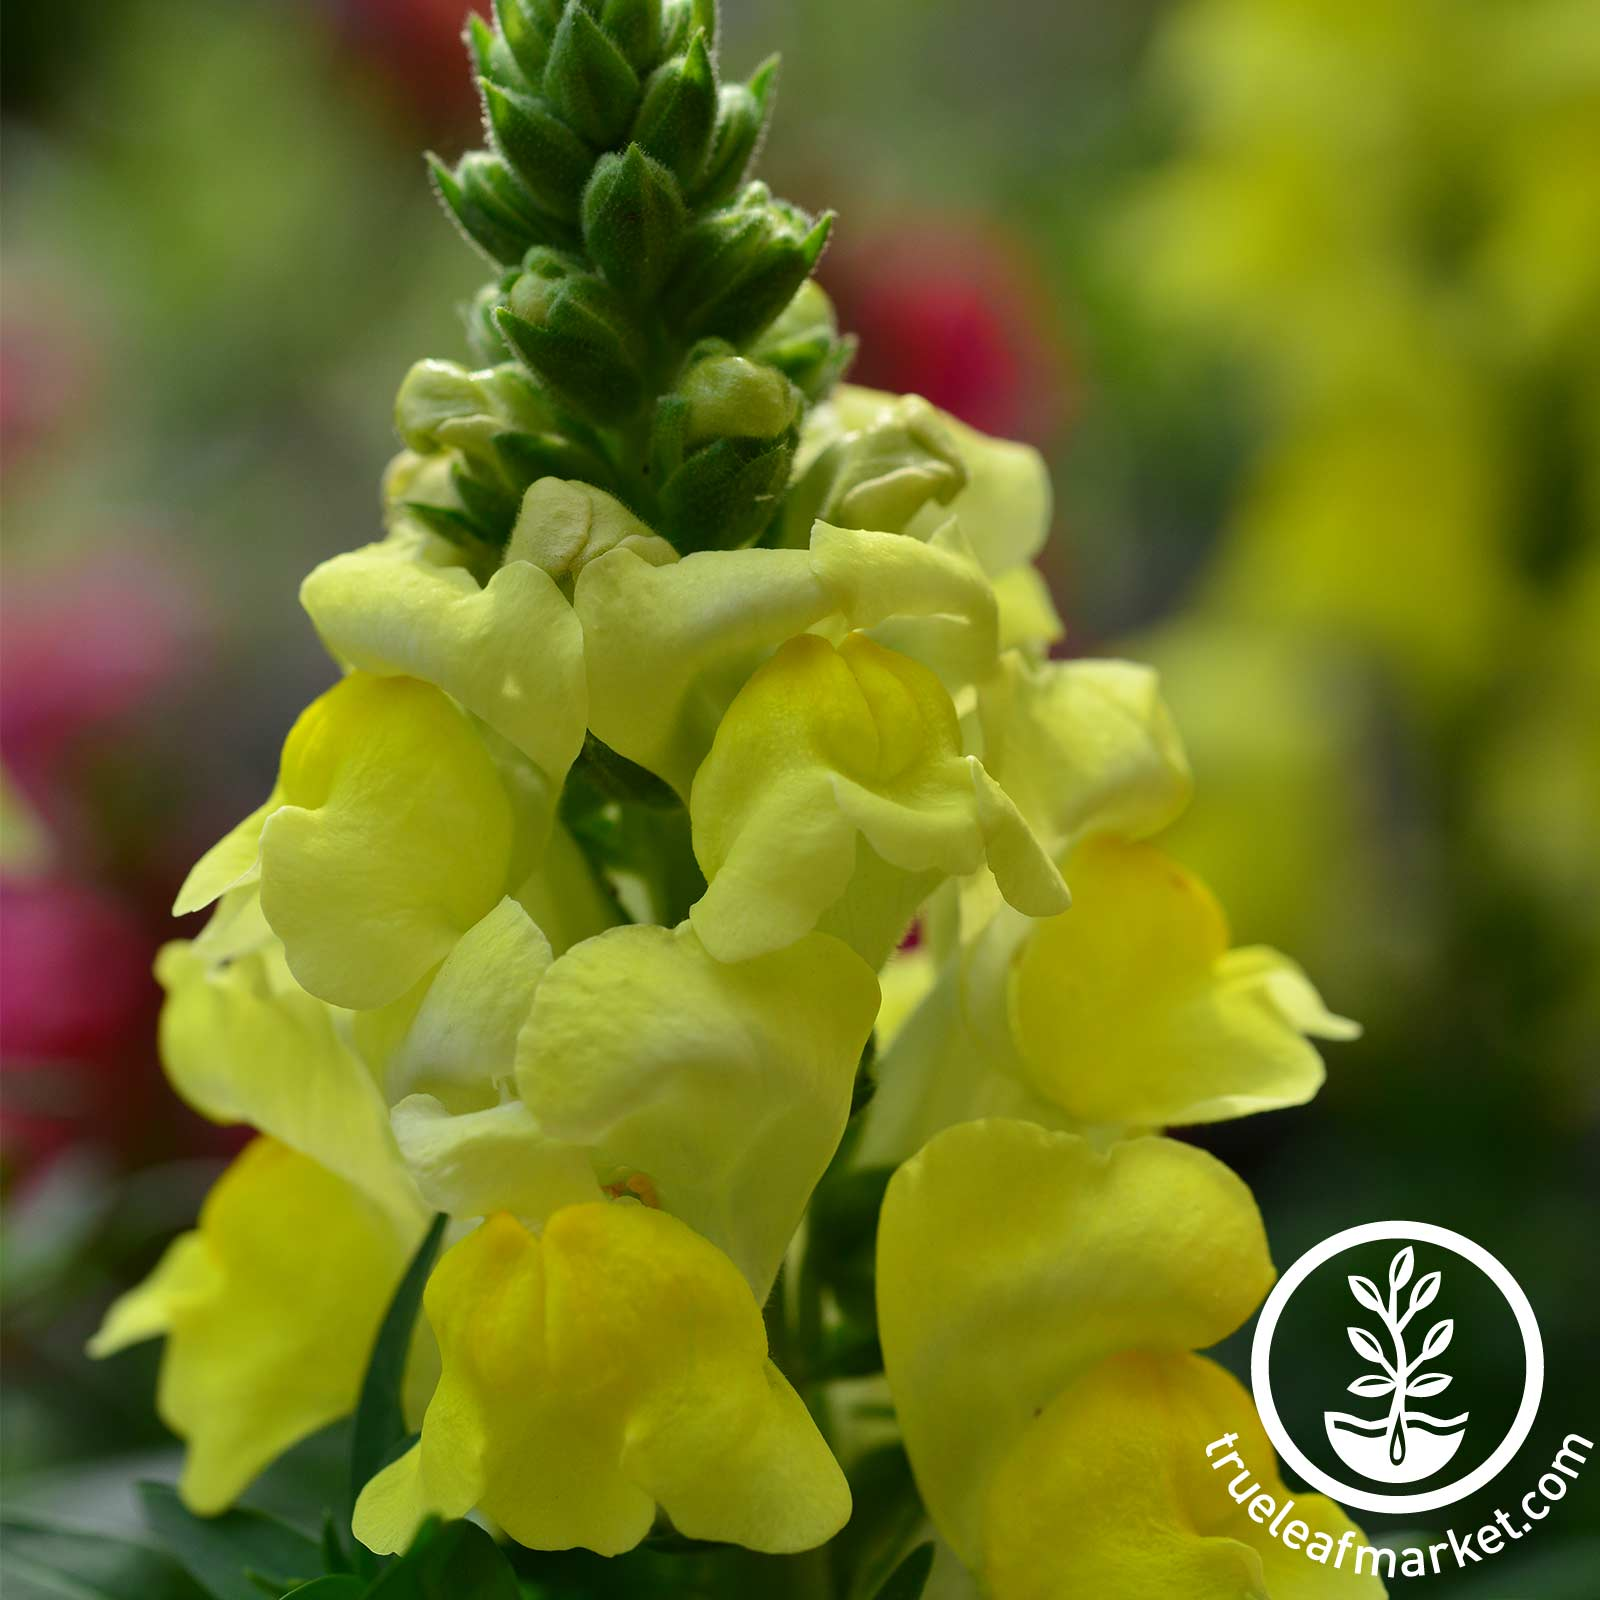 Snapdragon Floral Showers Series Yellow Seed